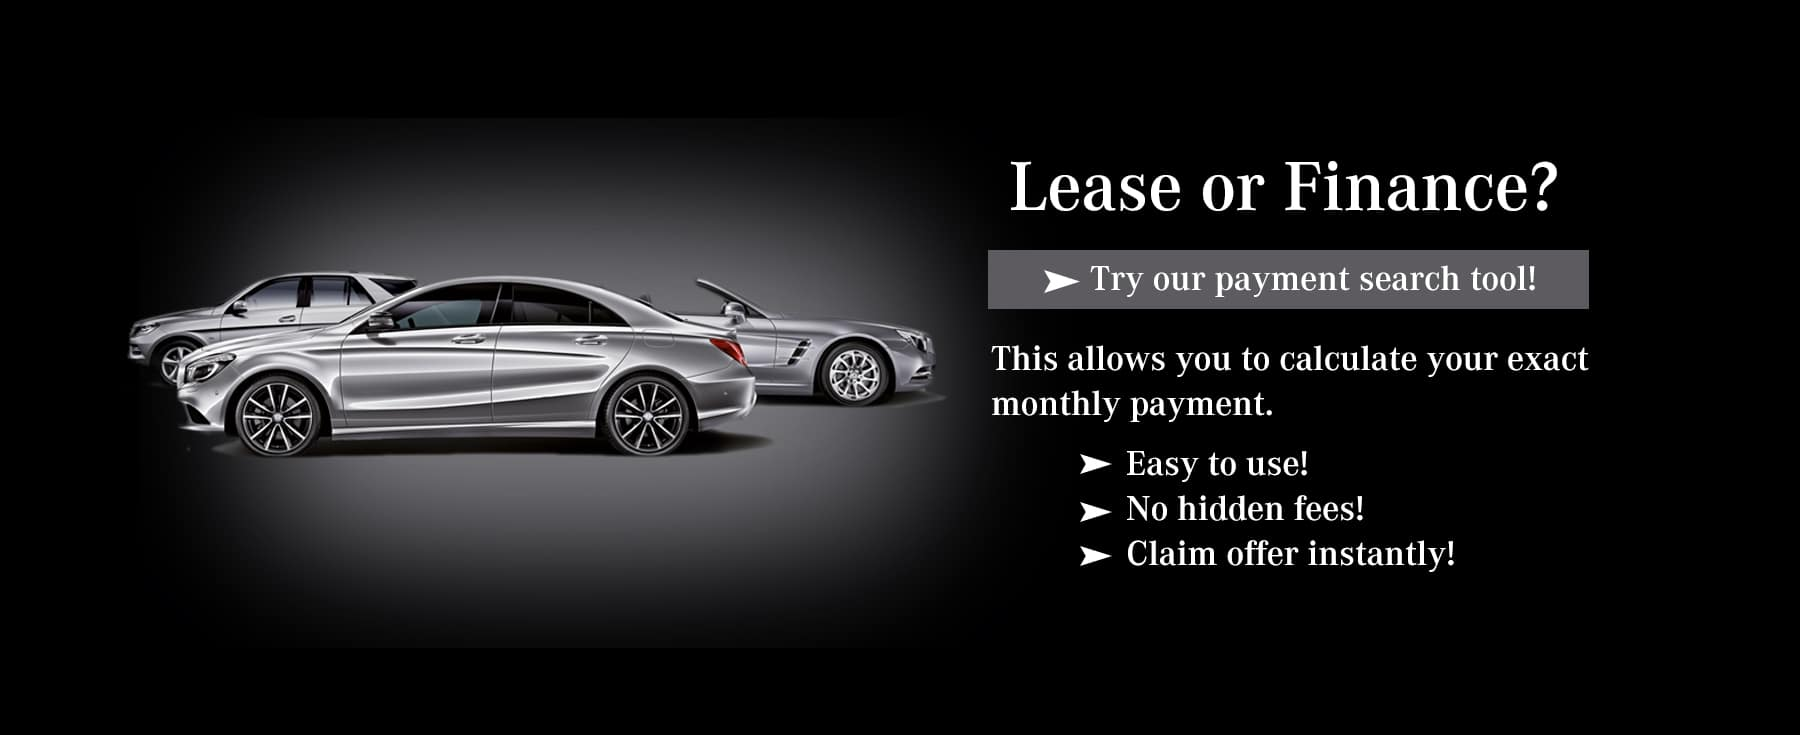 lease or finance